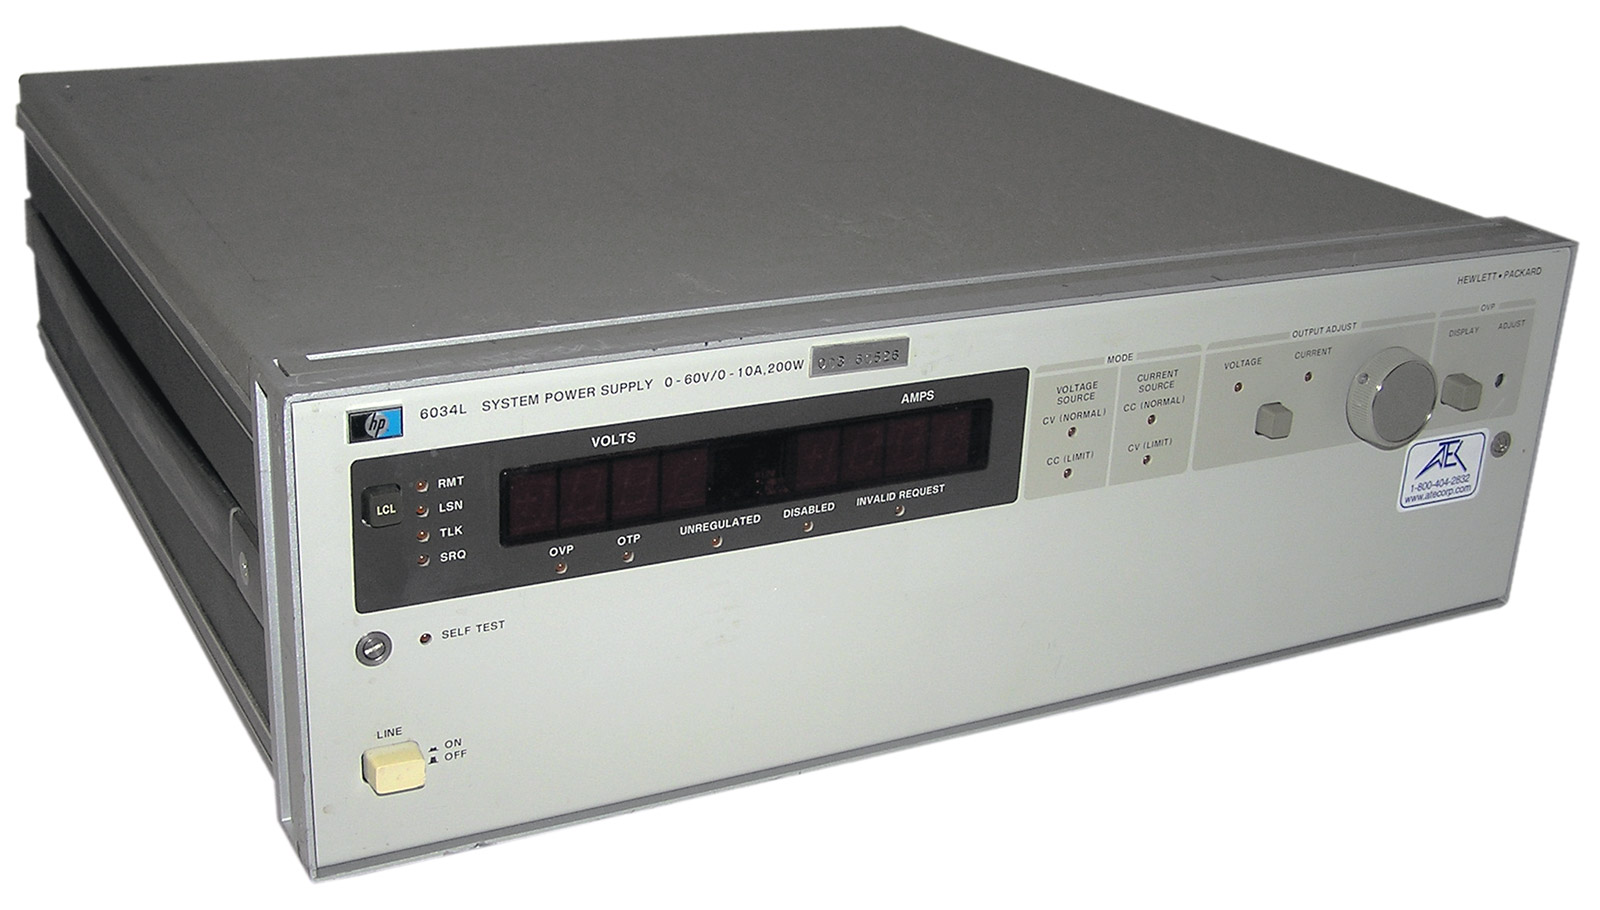 HP/Agilent 6034L 60V, 10A DC Power Supply